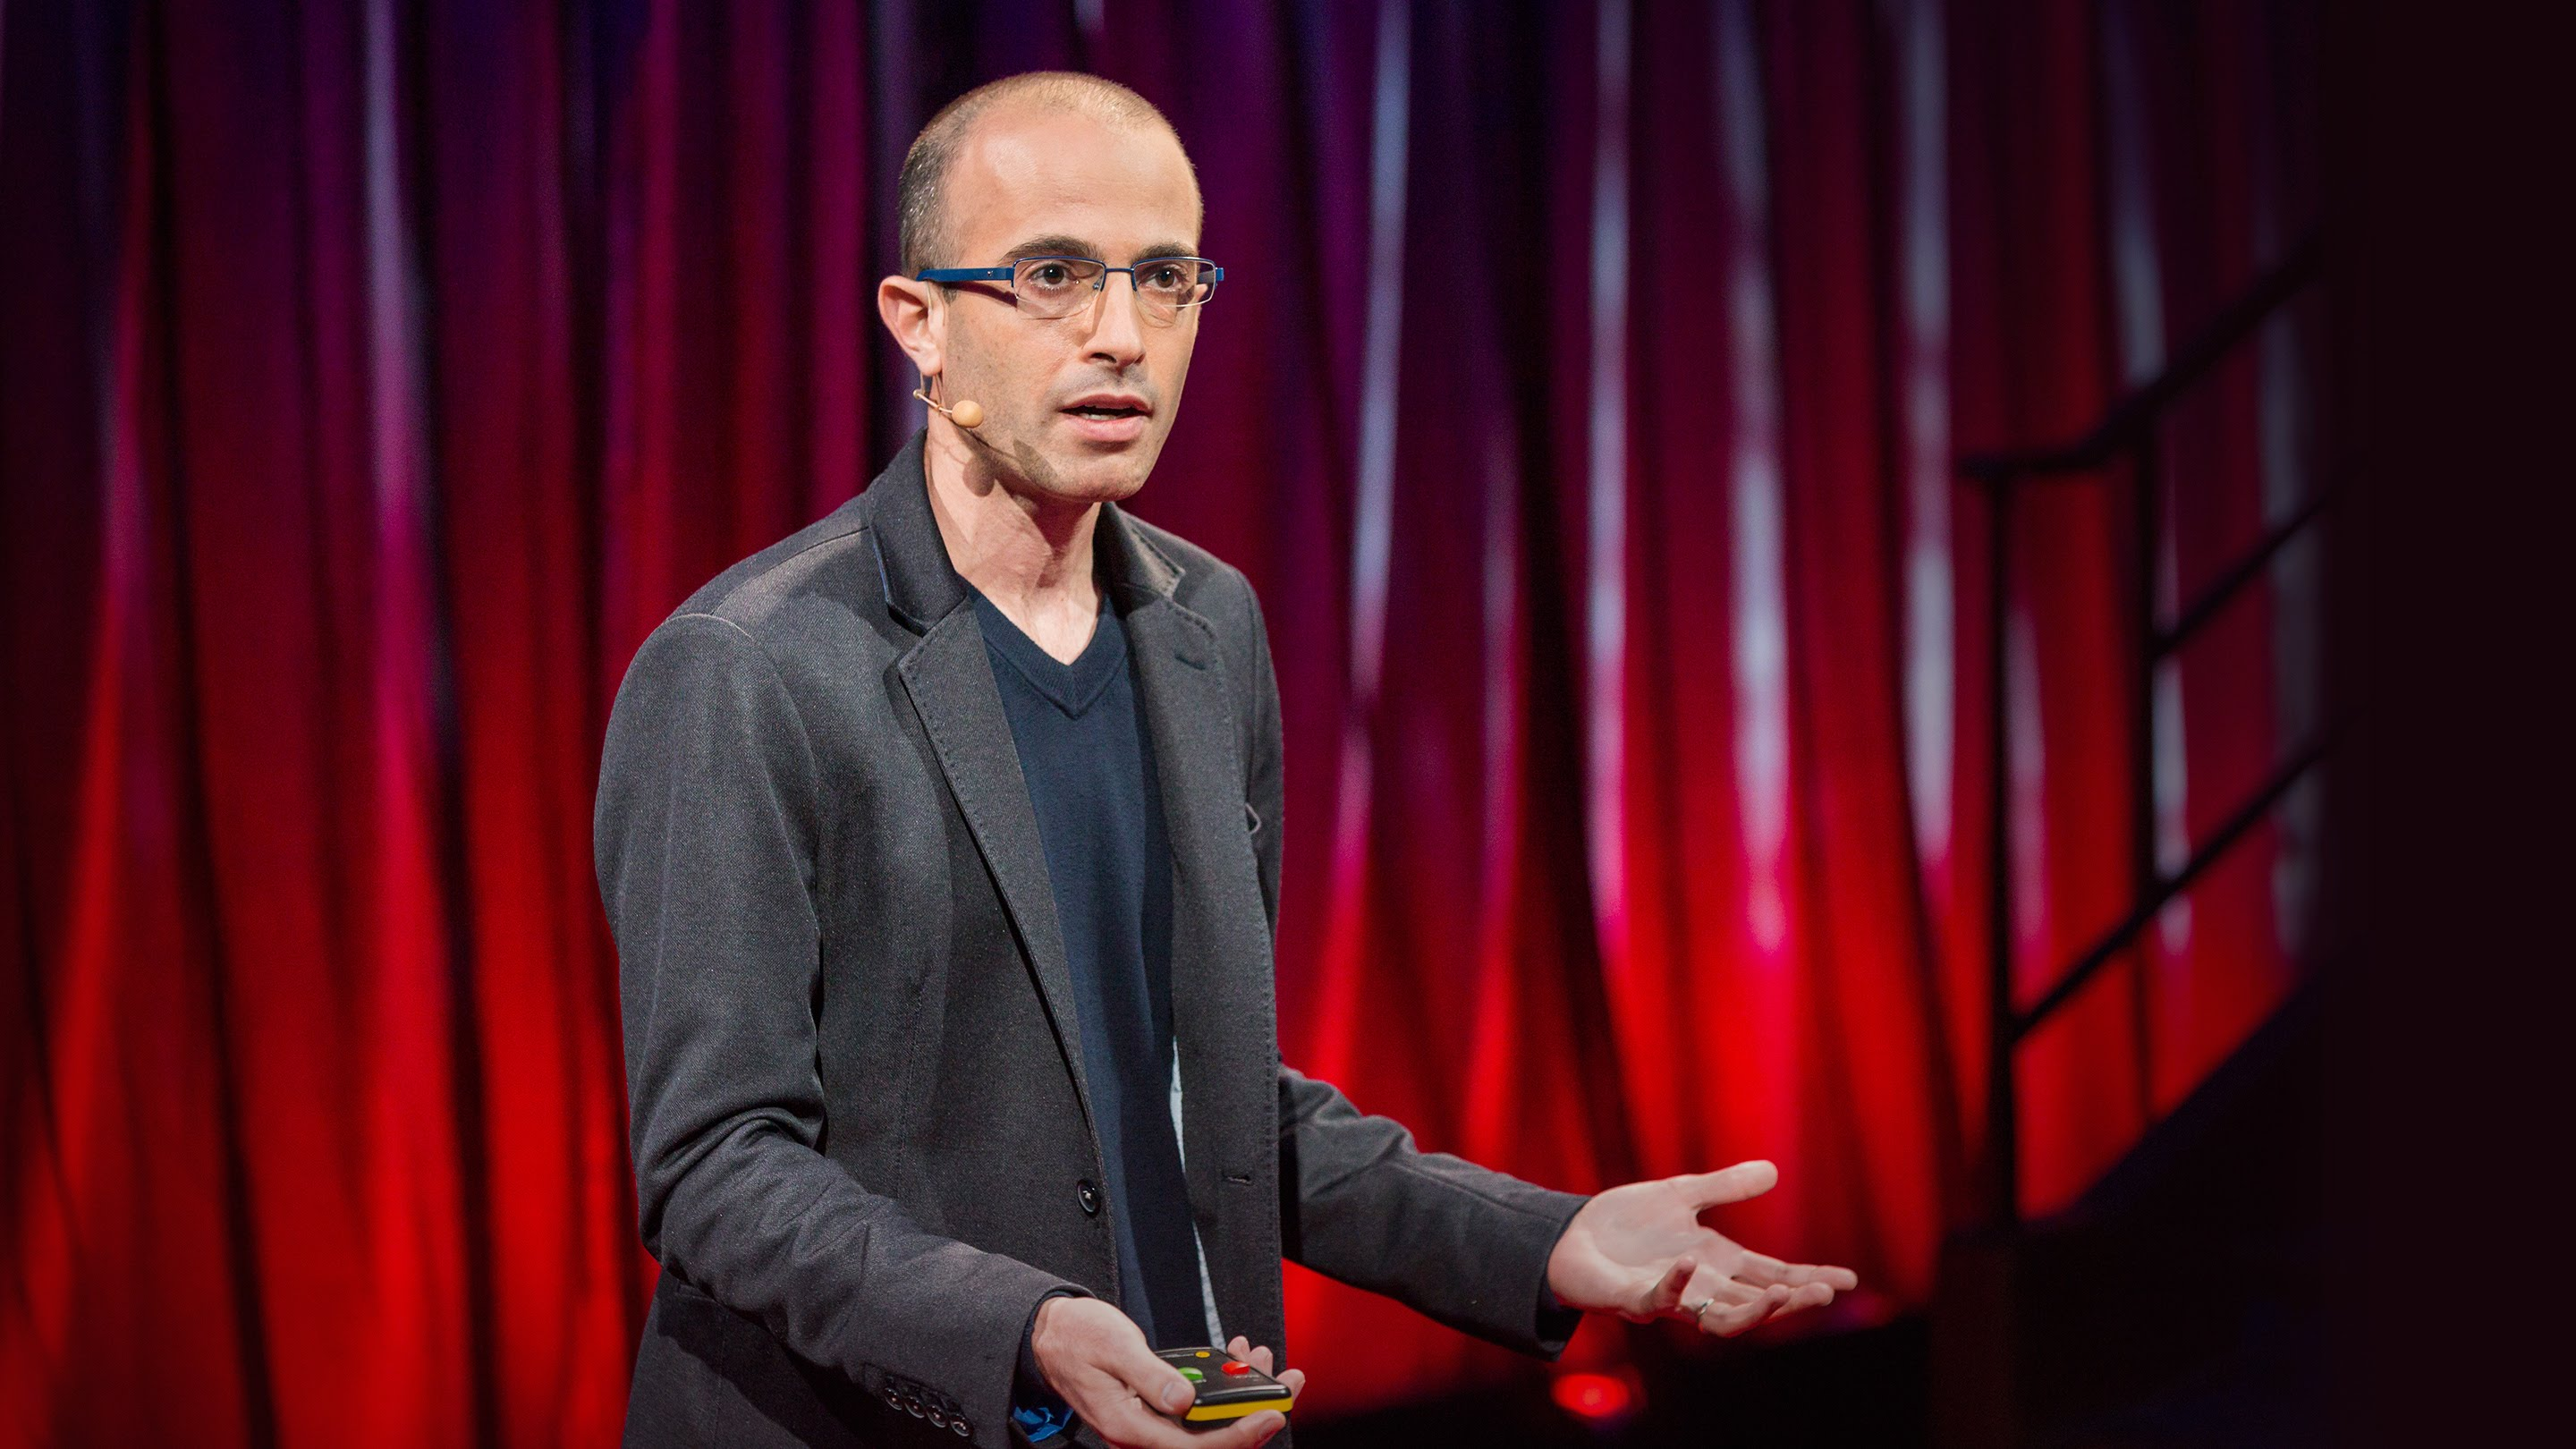 「Yuval Noah Harari:人類崛起的原因」- What Explains the Rise of Humans?